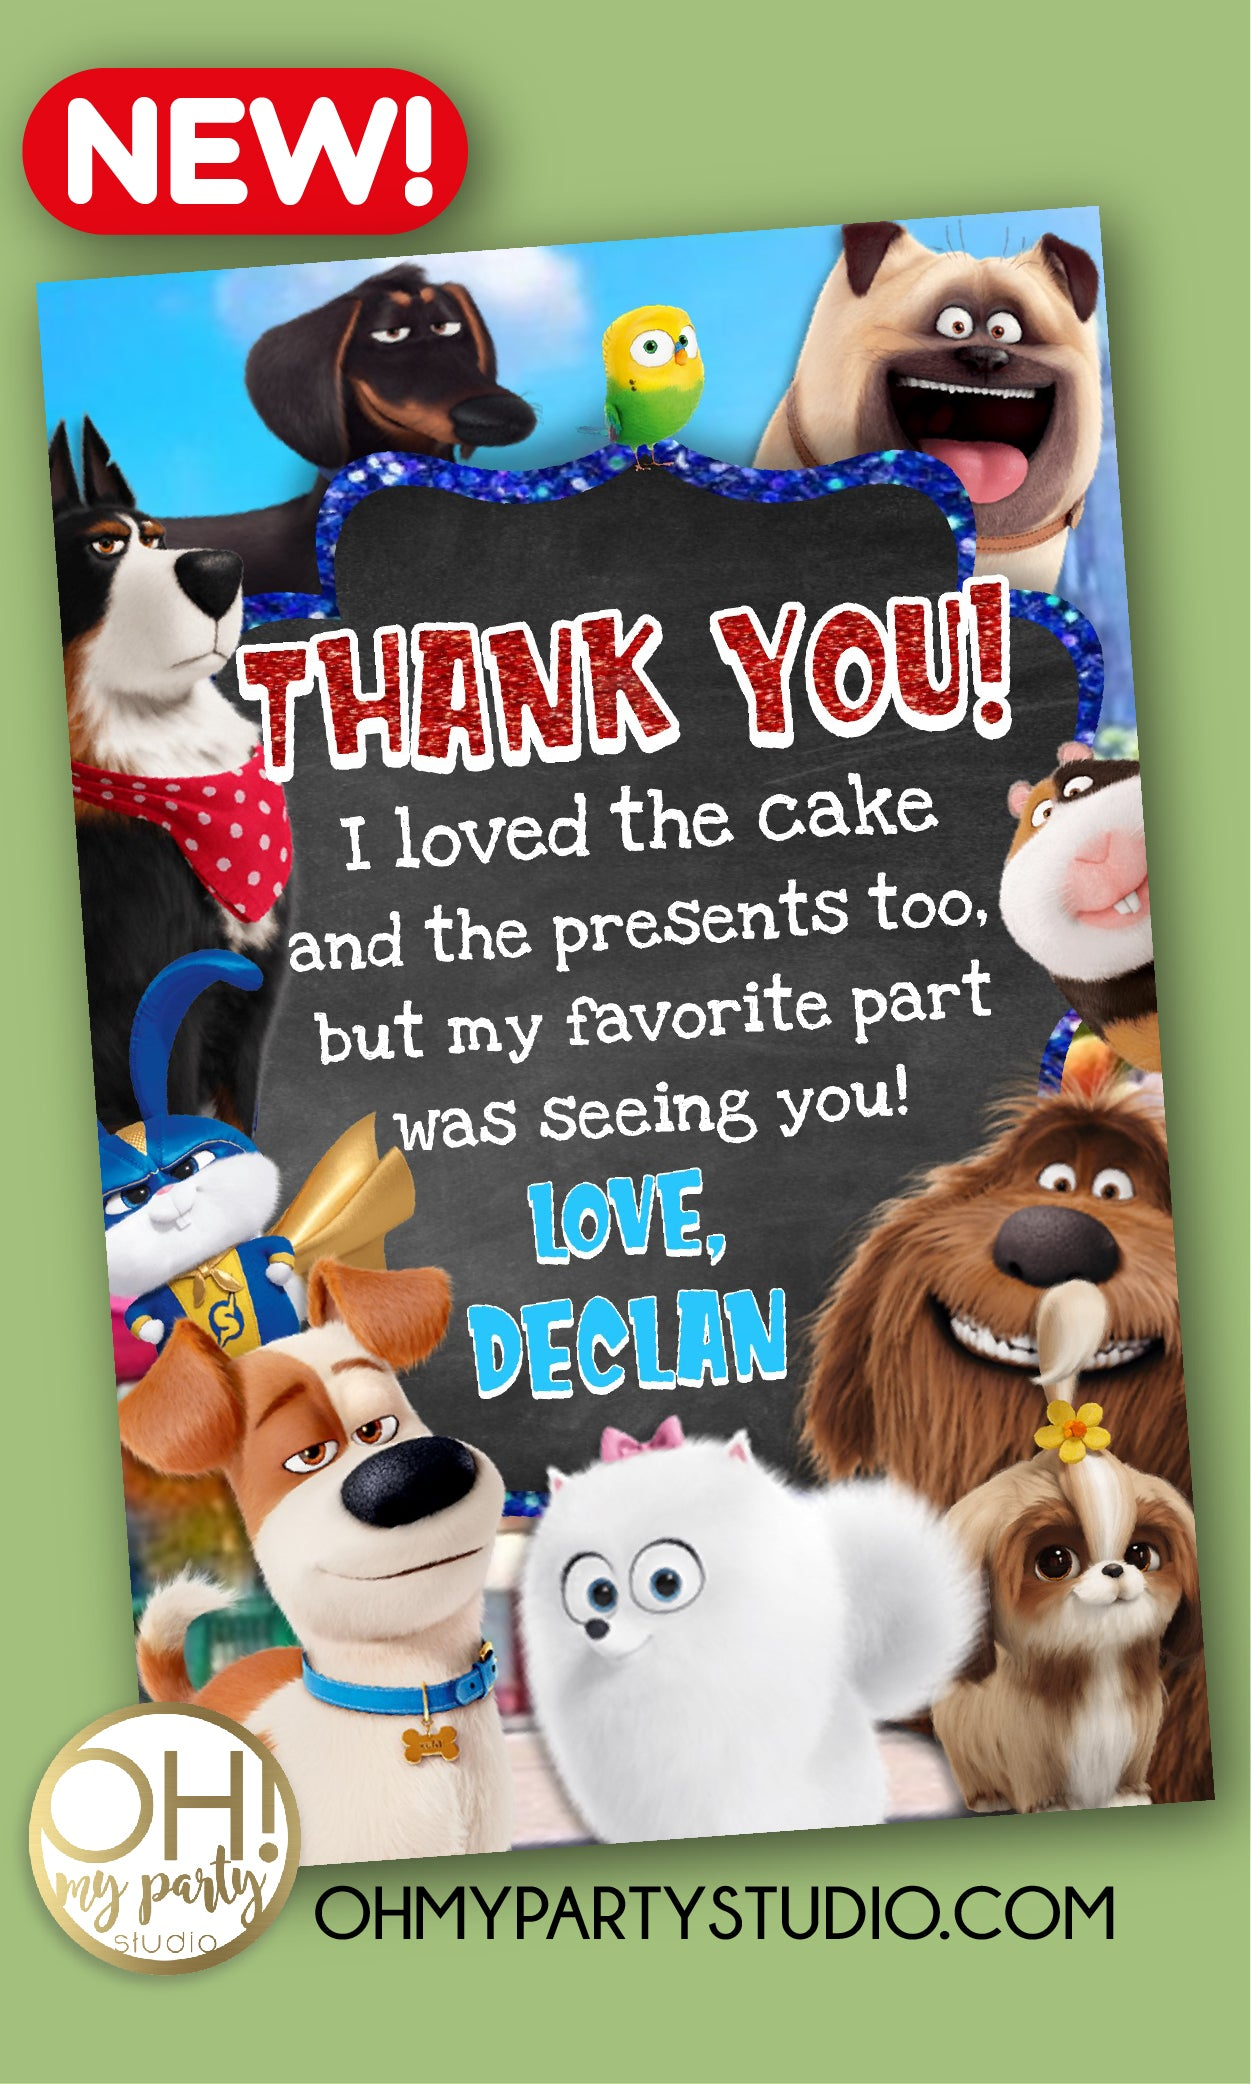 SECRET LIFE OF PETS THANK YOU CARD, SECRET LIFE OF PETS BIRTHDAY, SECRET LIFE OF PETS PARTY IDEAS, SECRET LIFE OF PETS BIRTHDAY PARTY, SECRET LIFE OF PETS PARTY, SECRET LIFE OF PETS FAVORS, SECRET LIFE OF PETS THANK YOU, SECRET LIFE OF PETS CARD, SECRET LIFE OF PETS PARTY PRINTABLES, SECRET LIFE OF PETS PARTY SUPLLIES